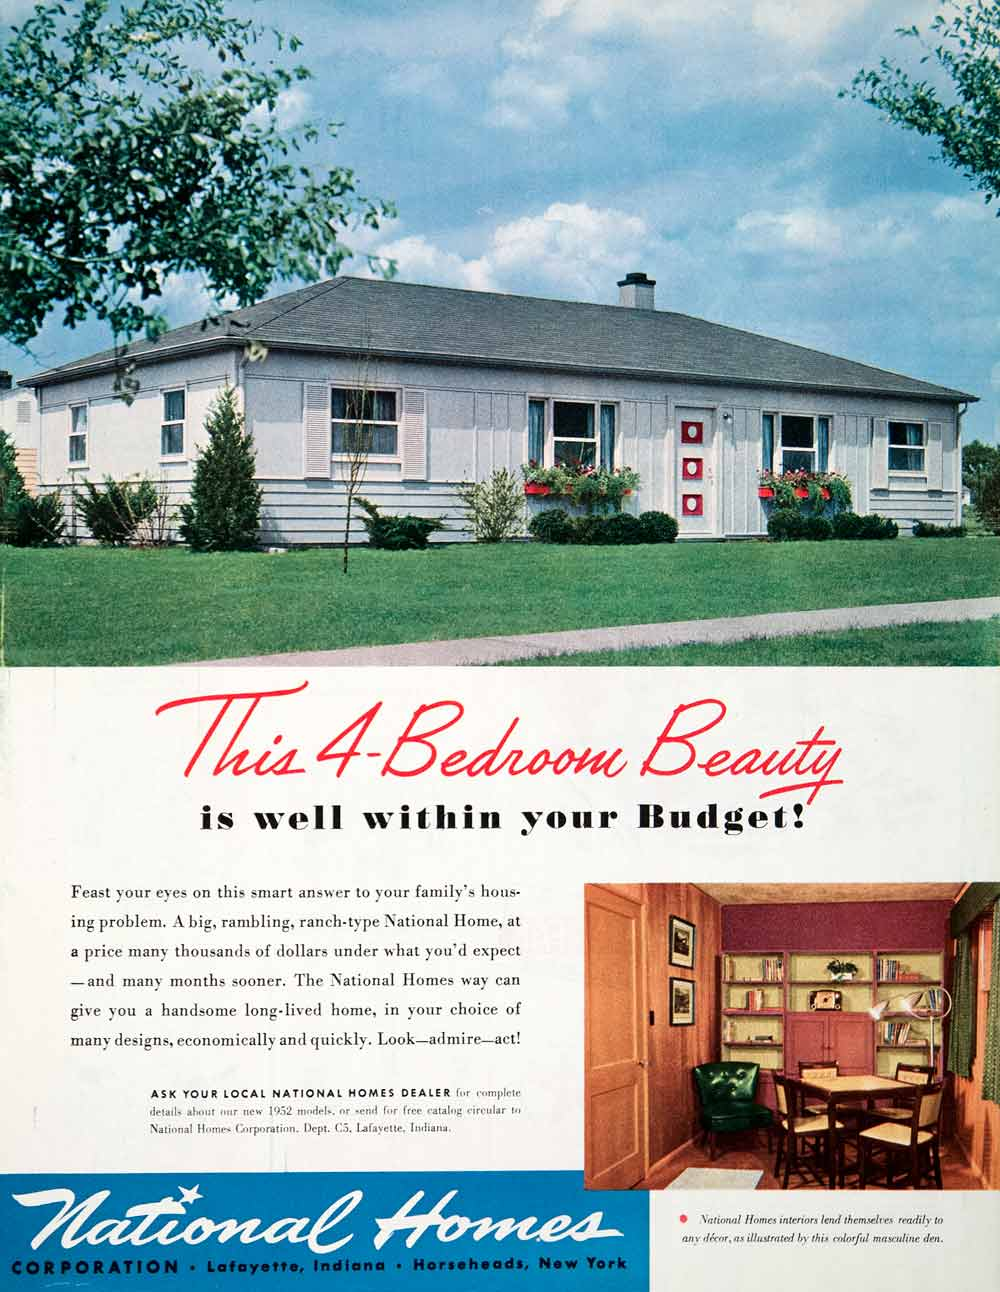 1951 Ad Four Bedroom Ranch House National Homes Horseheads Modular Ranch House Designs New Color on